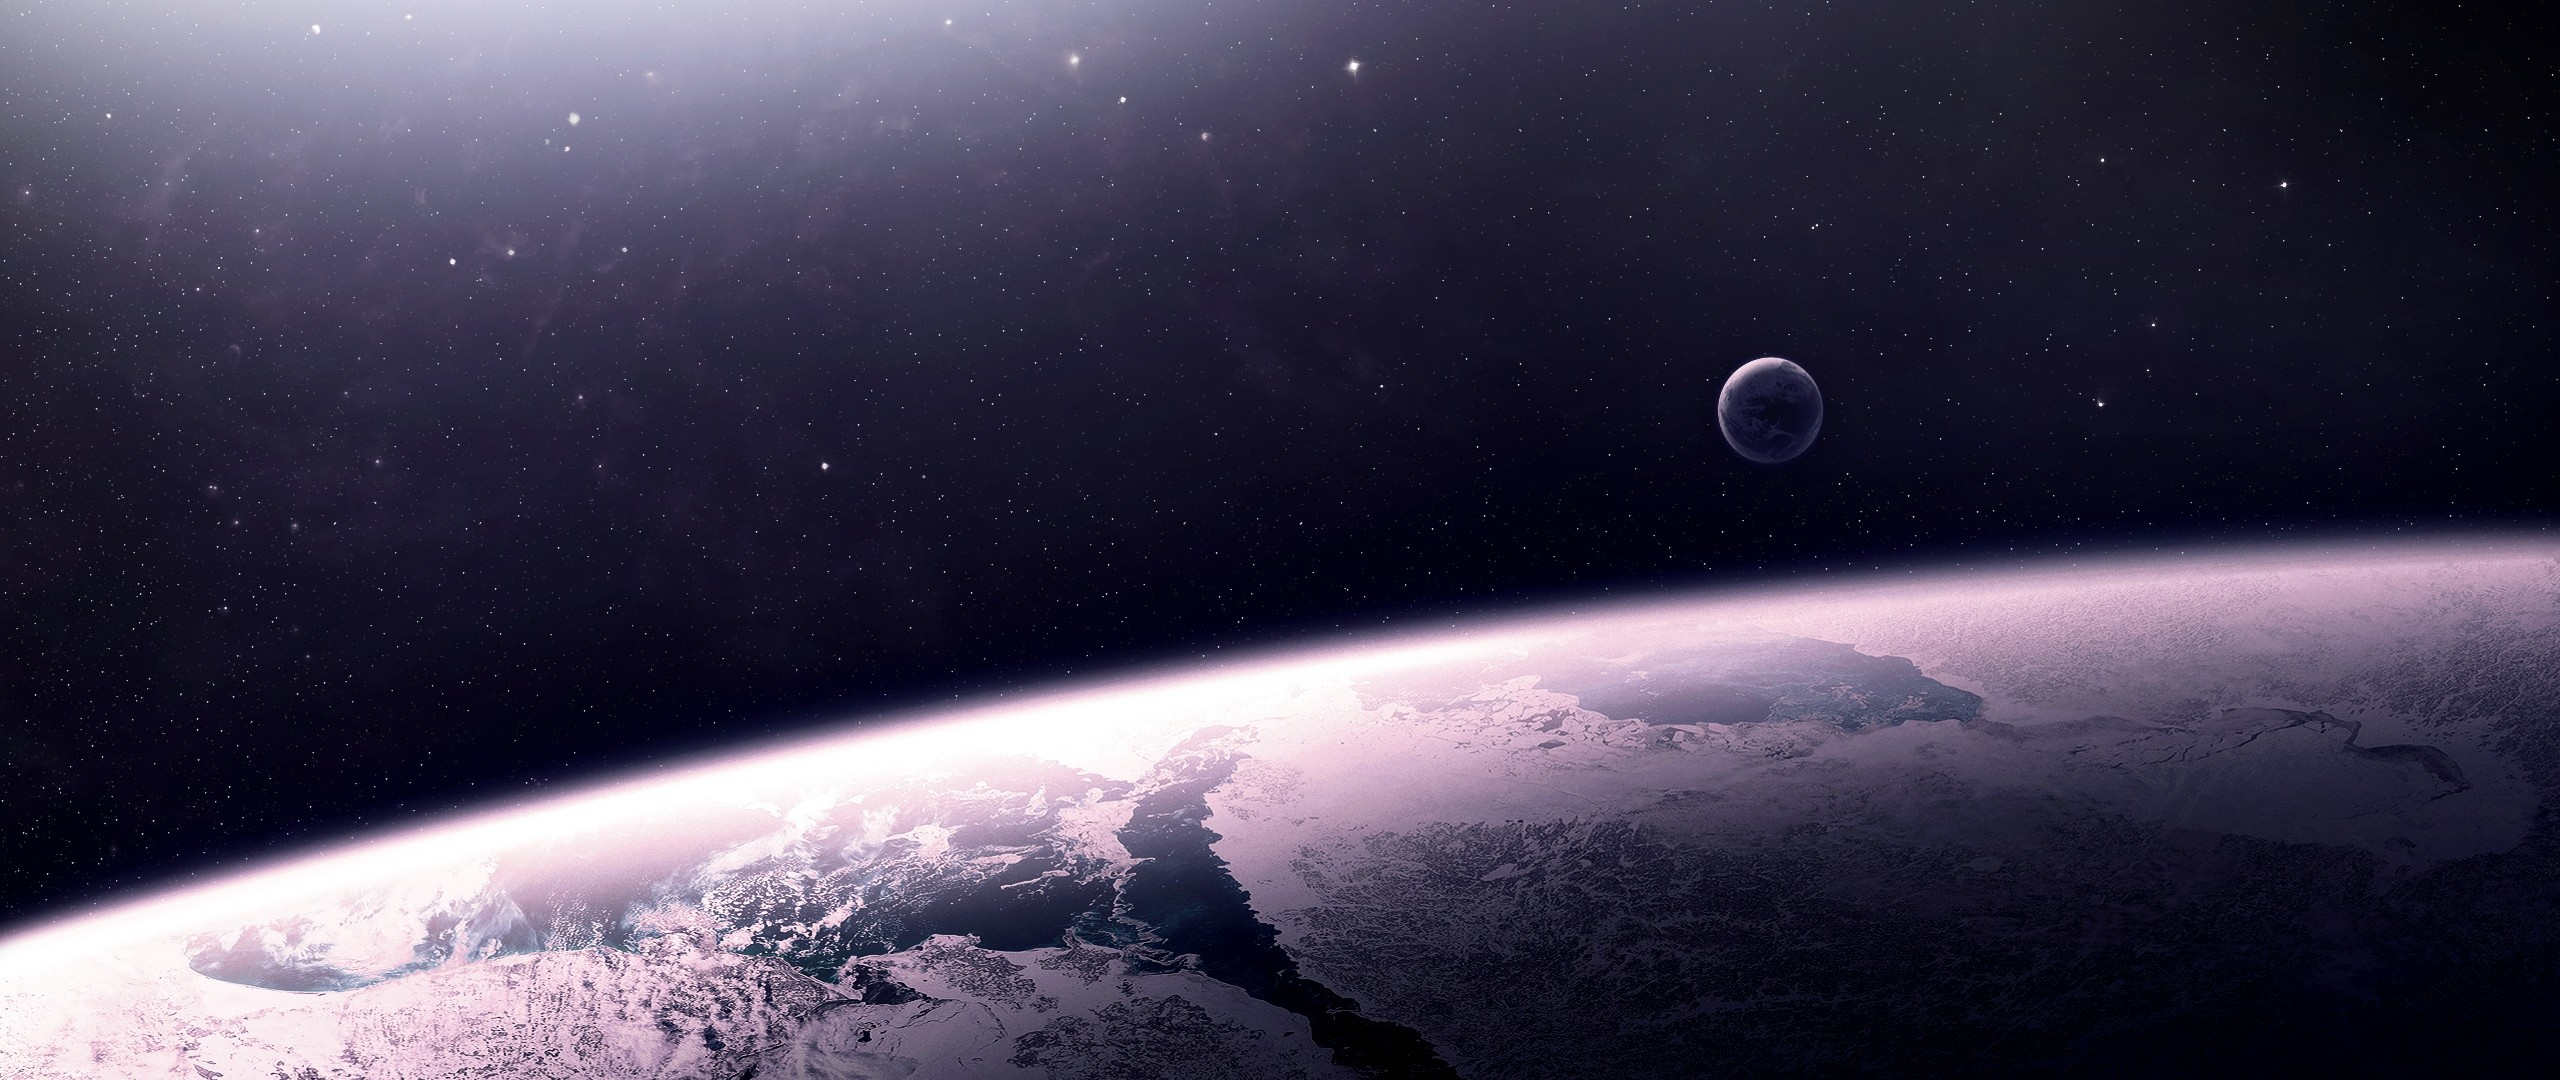 2560x1080  Wallpaper star, relief, planet, space